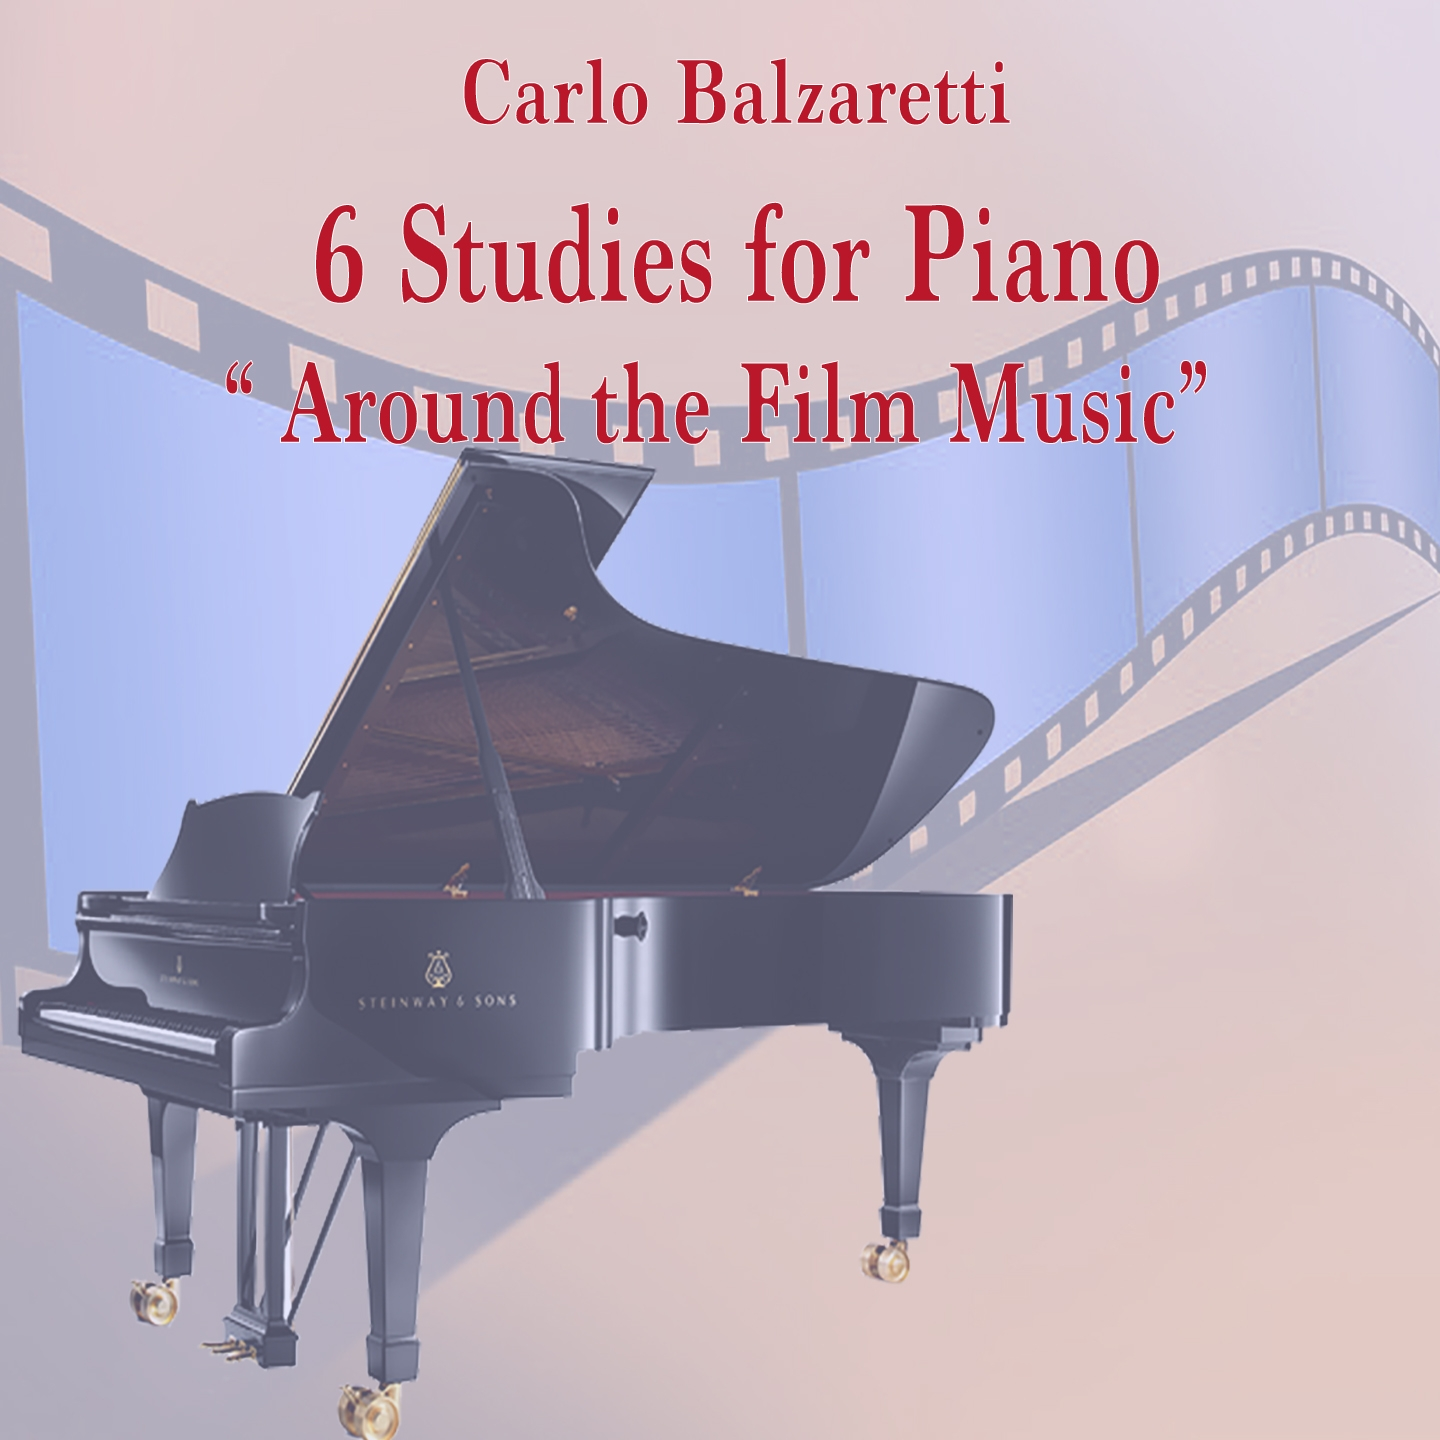 6 Studies for Piano